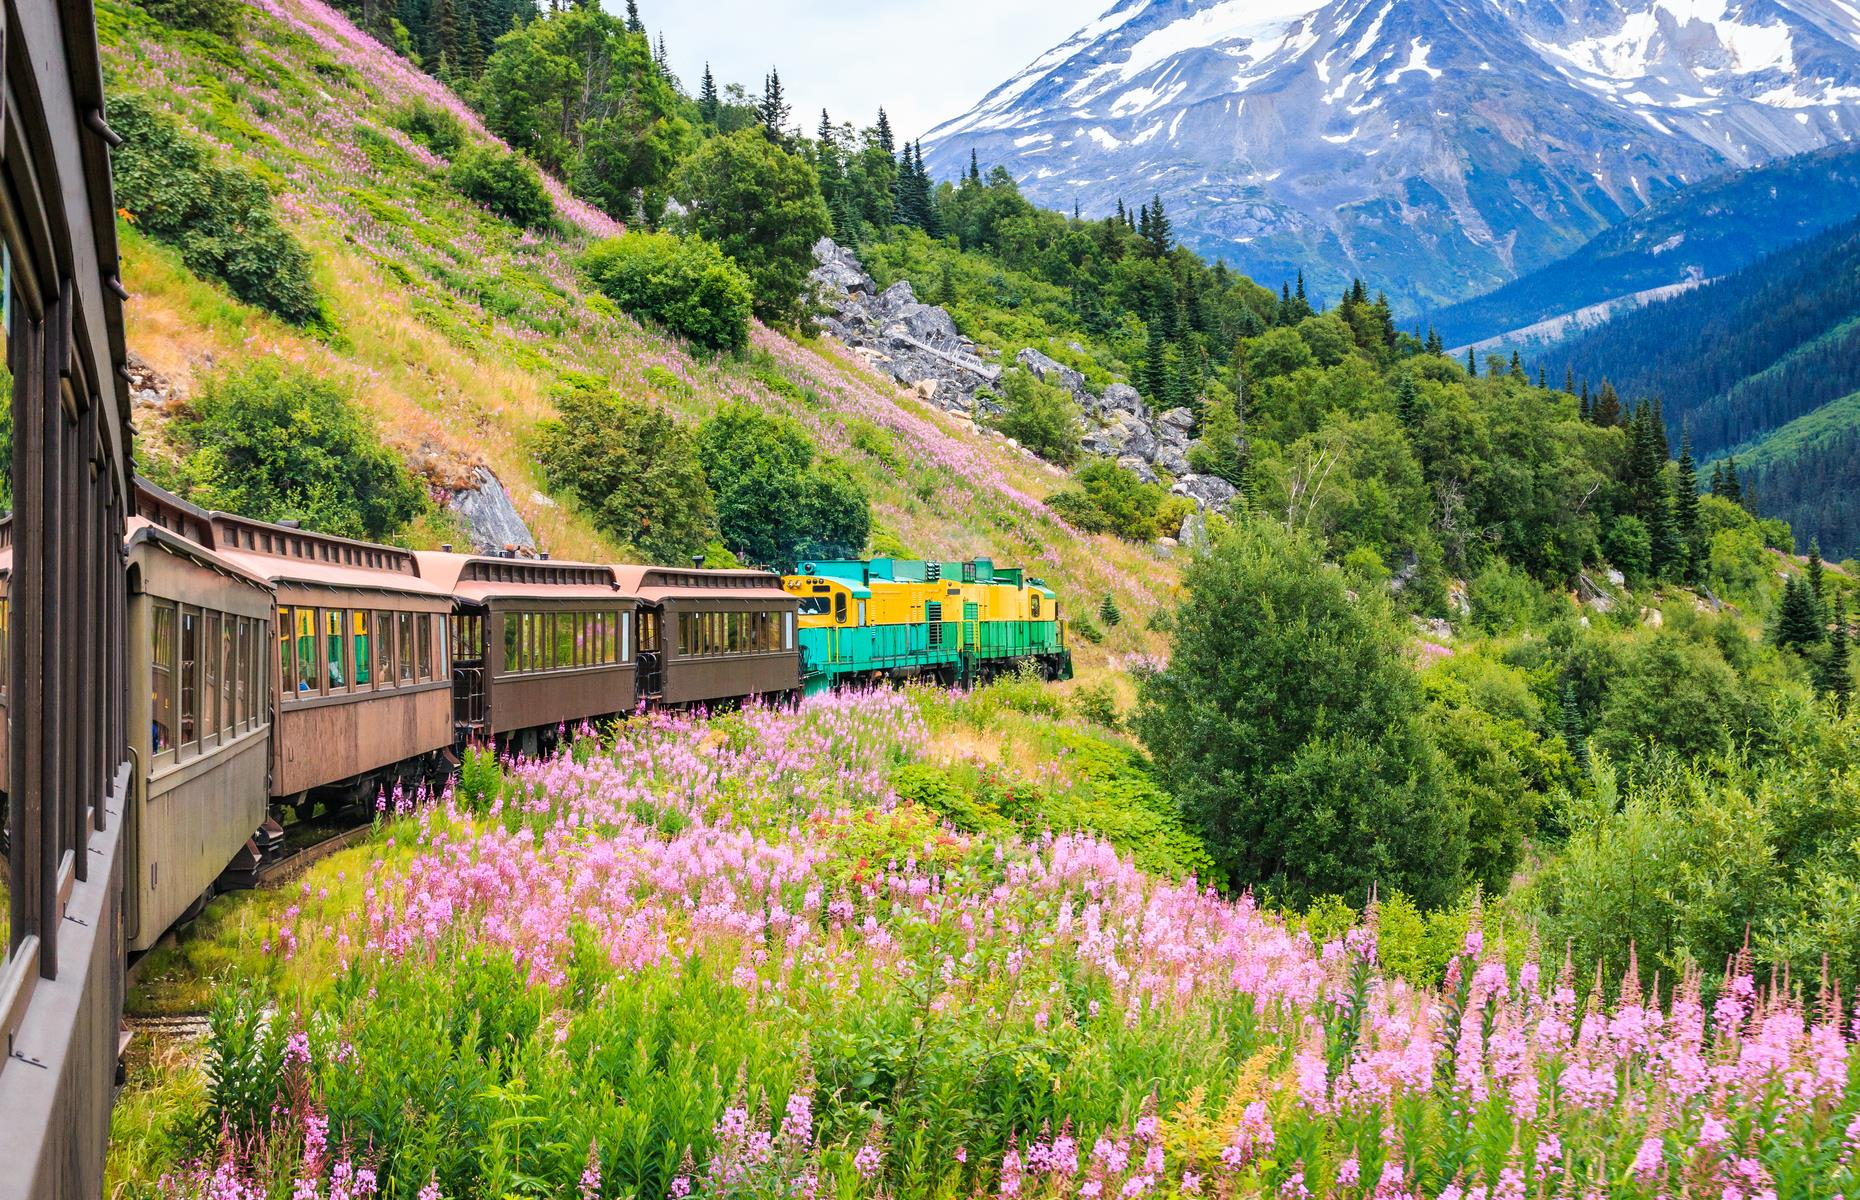 Slide 27 of 61: This railway route touts itself as the most scenic in the world, and it's not hard to see why. The snow-dusted mountains, pink and yellow wildflowers and rambling hills appear almost Alpine. The railroad, whose construction began in 1898, instead rattles through Alaska towards Canada, leaving from the little city of Skagway. The White Pass Summit Excursion is the most traditional of routes, a 40-mile (64km) jaunt taking in the teetering peak of its namesake mountain pass. Trips look set to return during the 2021 season, with booking essential.